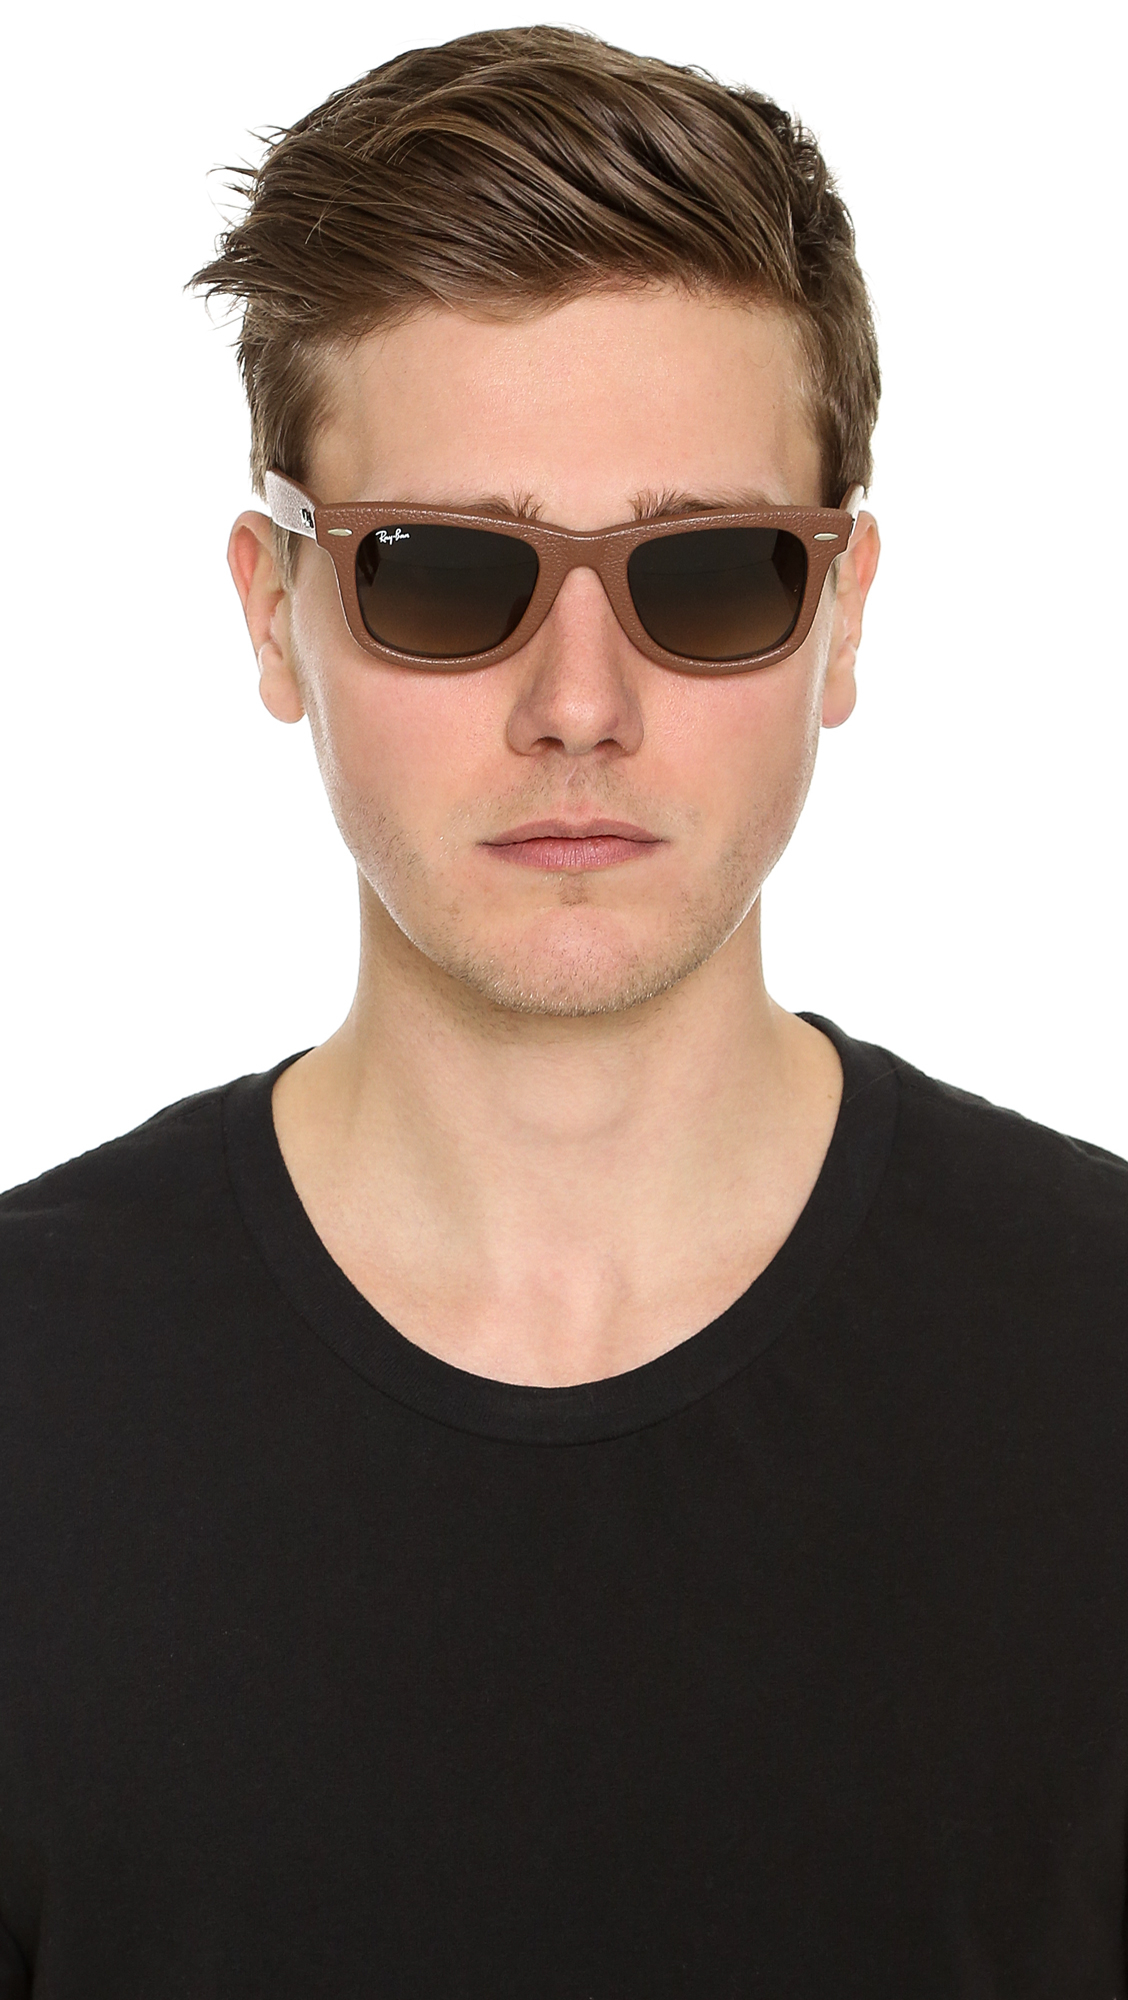 7909d71f8e ... reduced lyst ray ban leather wrapped wayfarer sunglasses in brown for  men 94b7d 9e4d7 ...